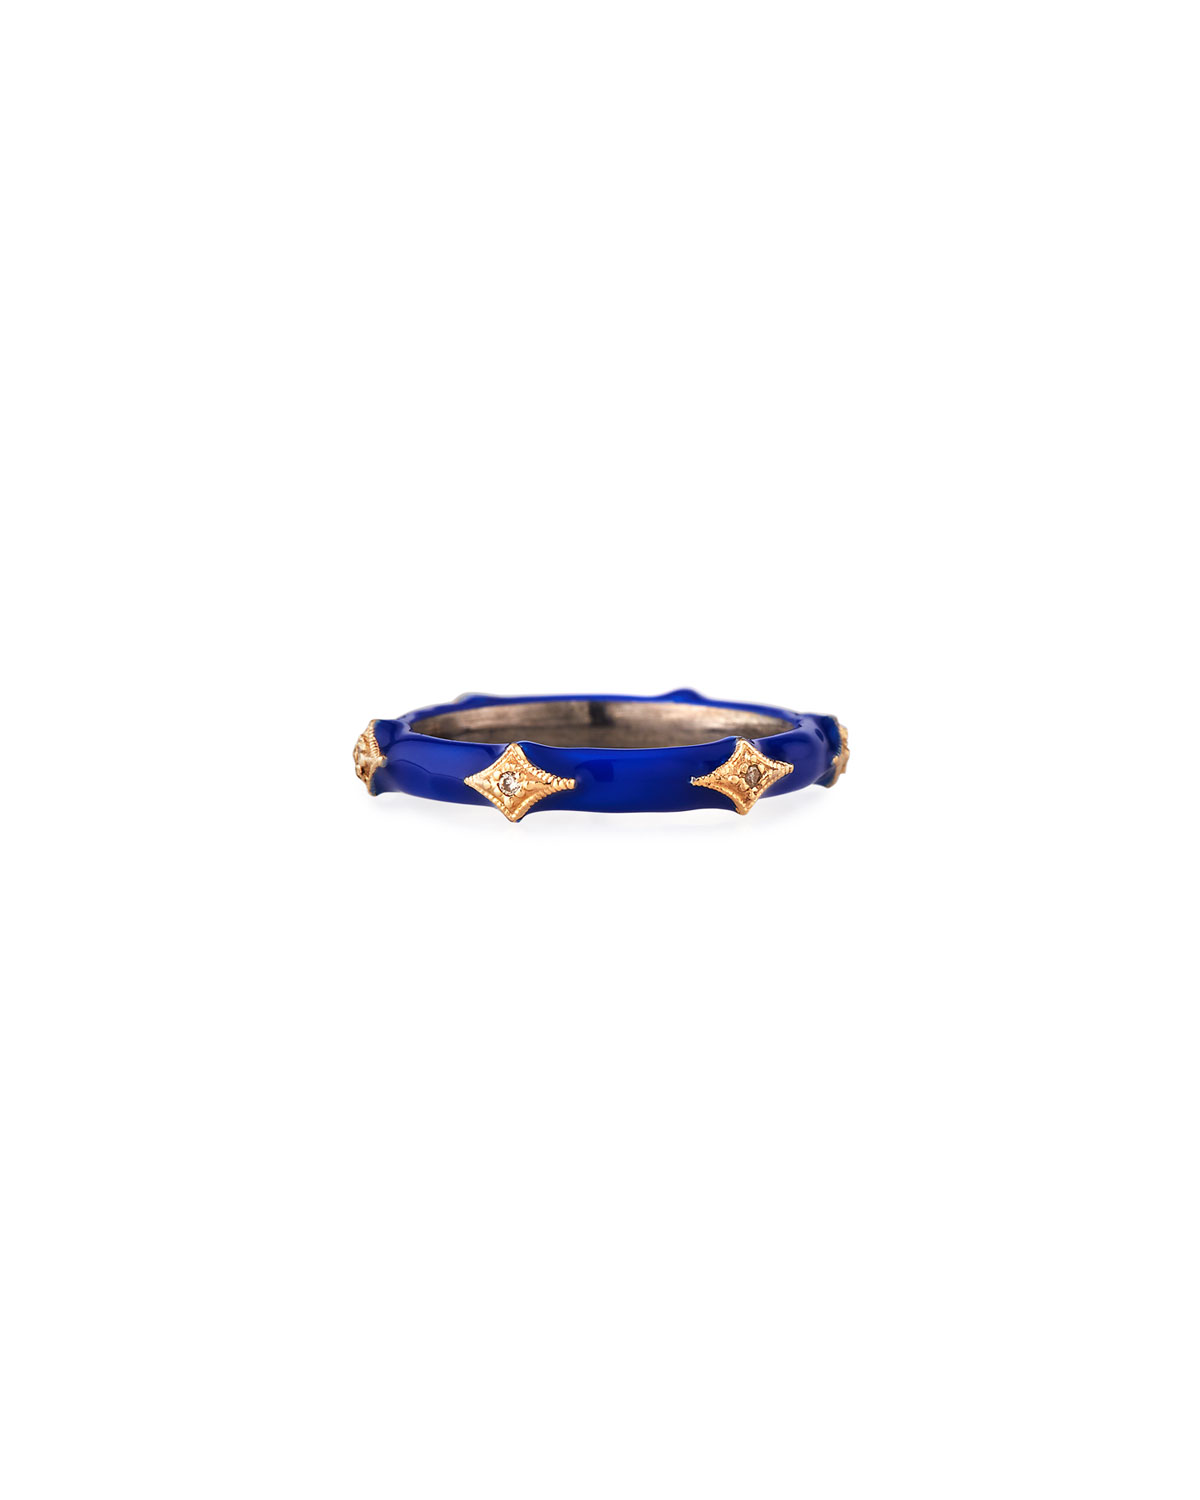 Armenta ring from the Old World Collection. 14-karat rose gold and royal blue enamel. Crivelli stations with white diamonds. 0.02 total diamond carat weight.